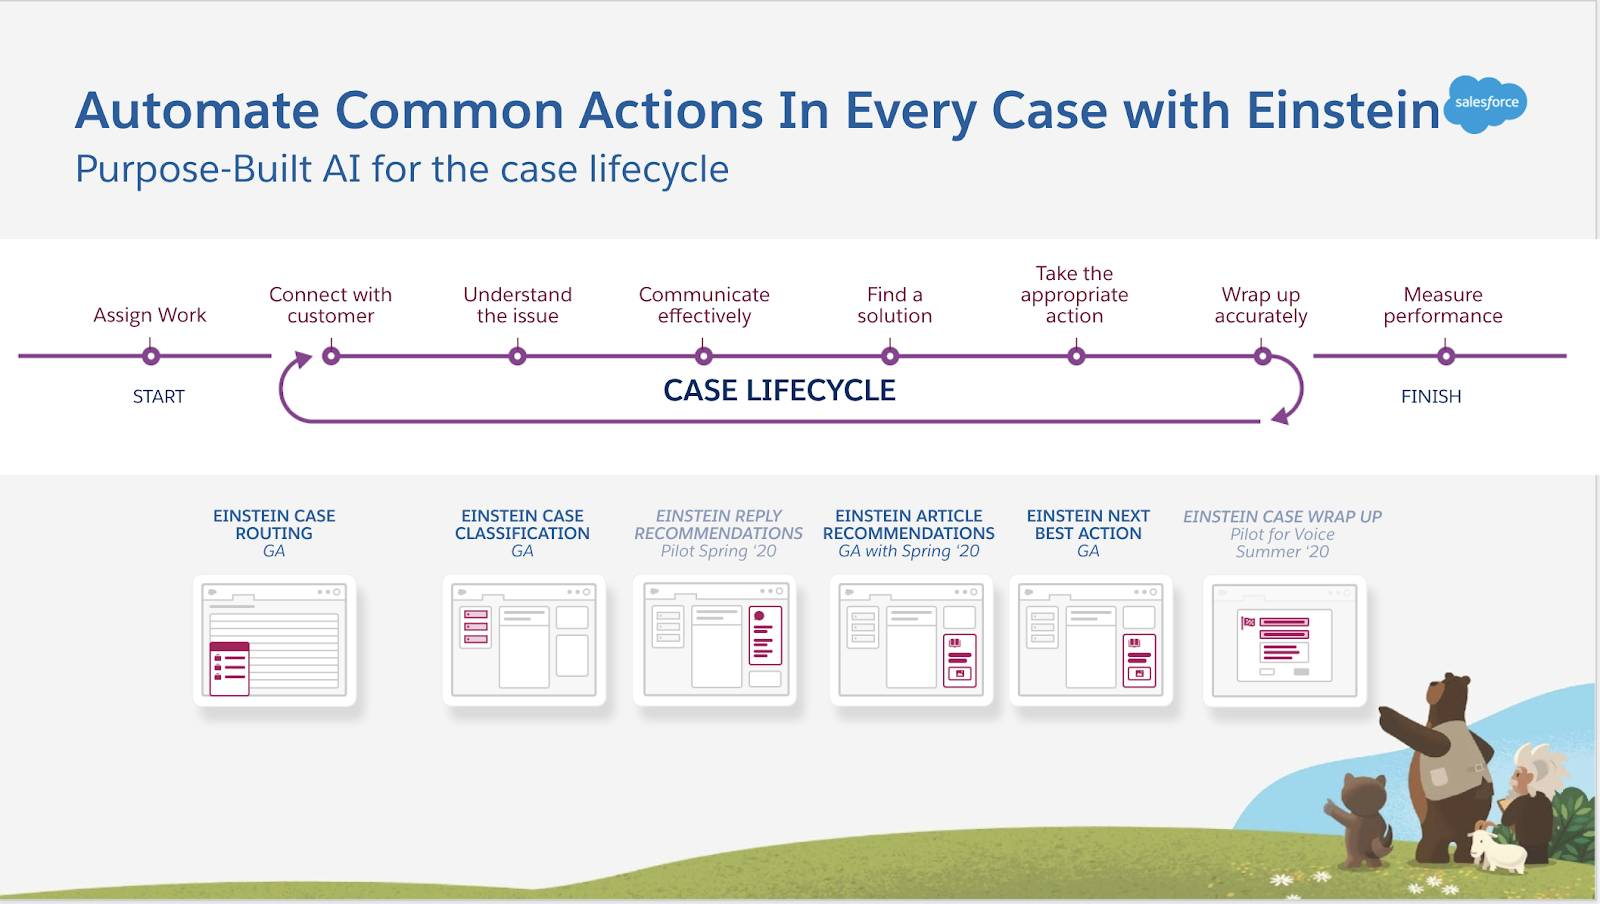 Timeline of case lifecycle, from start to finish: assign work, connect with customer, understand the issue, communicate effectively, find a solution, take the appropriate action, wrap up accurately, and measure performance.